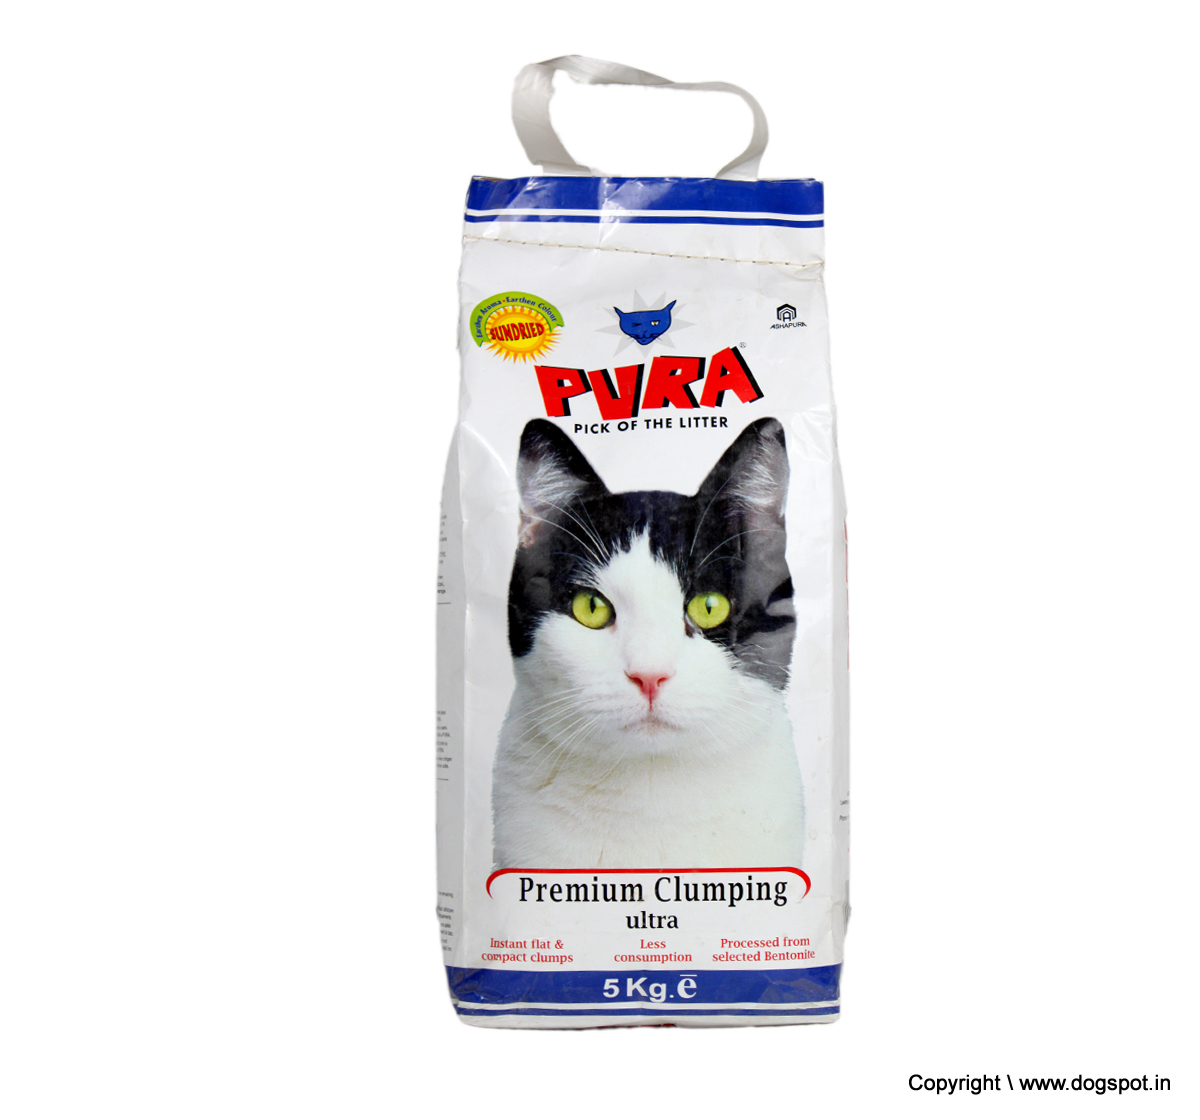 Pura Premium Clumping Ultra Cat Litter - 5 Kg